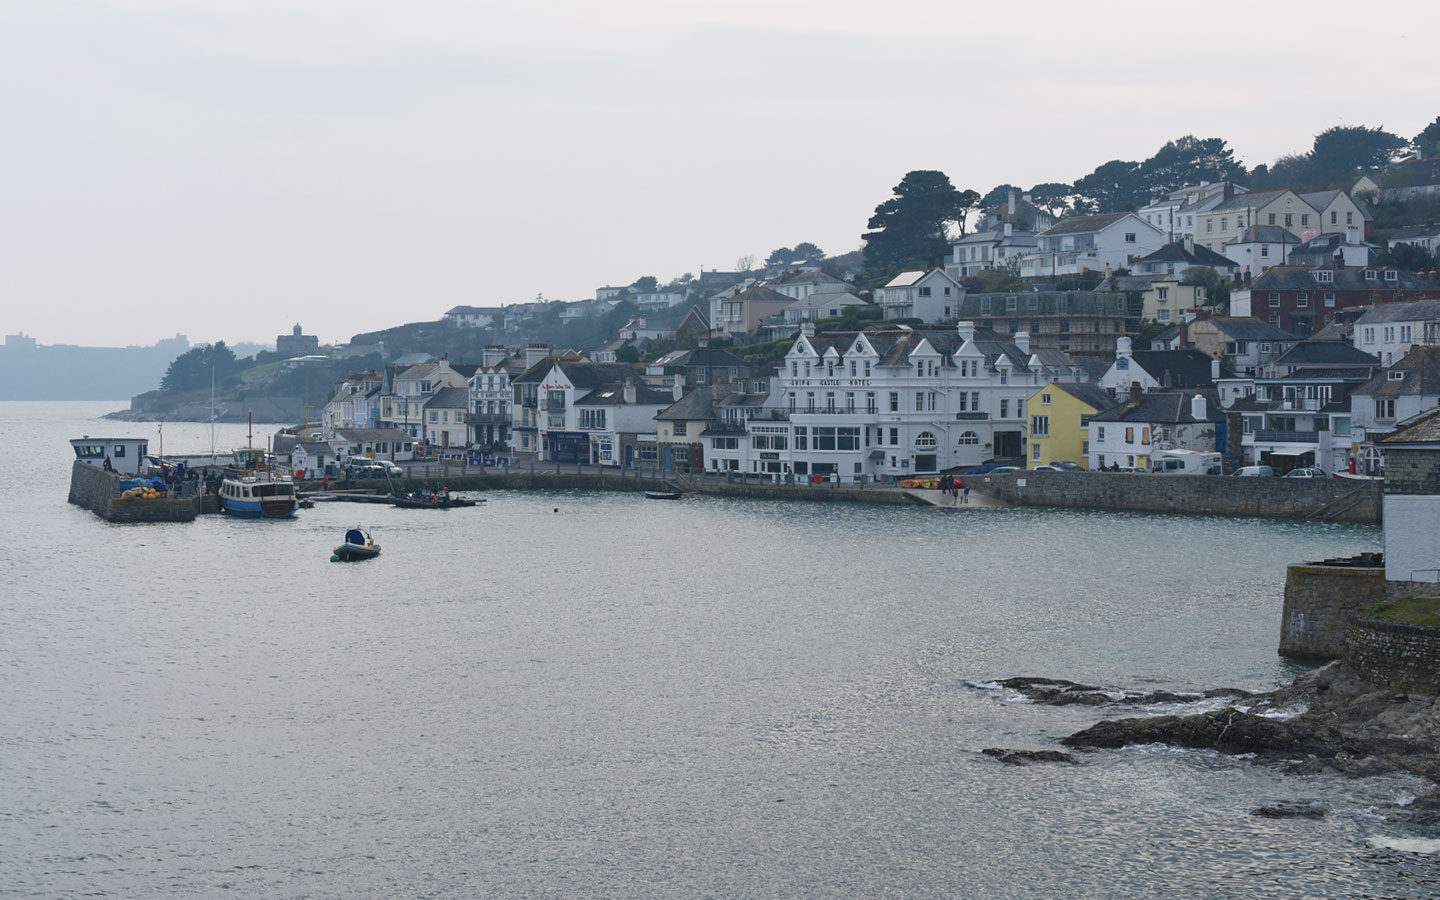 saint mawes harbour and town in cornwall